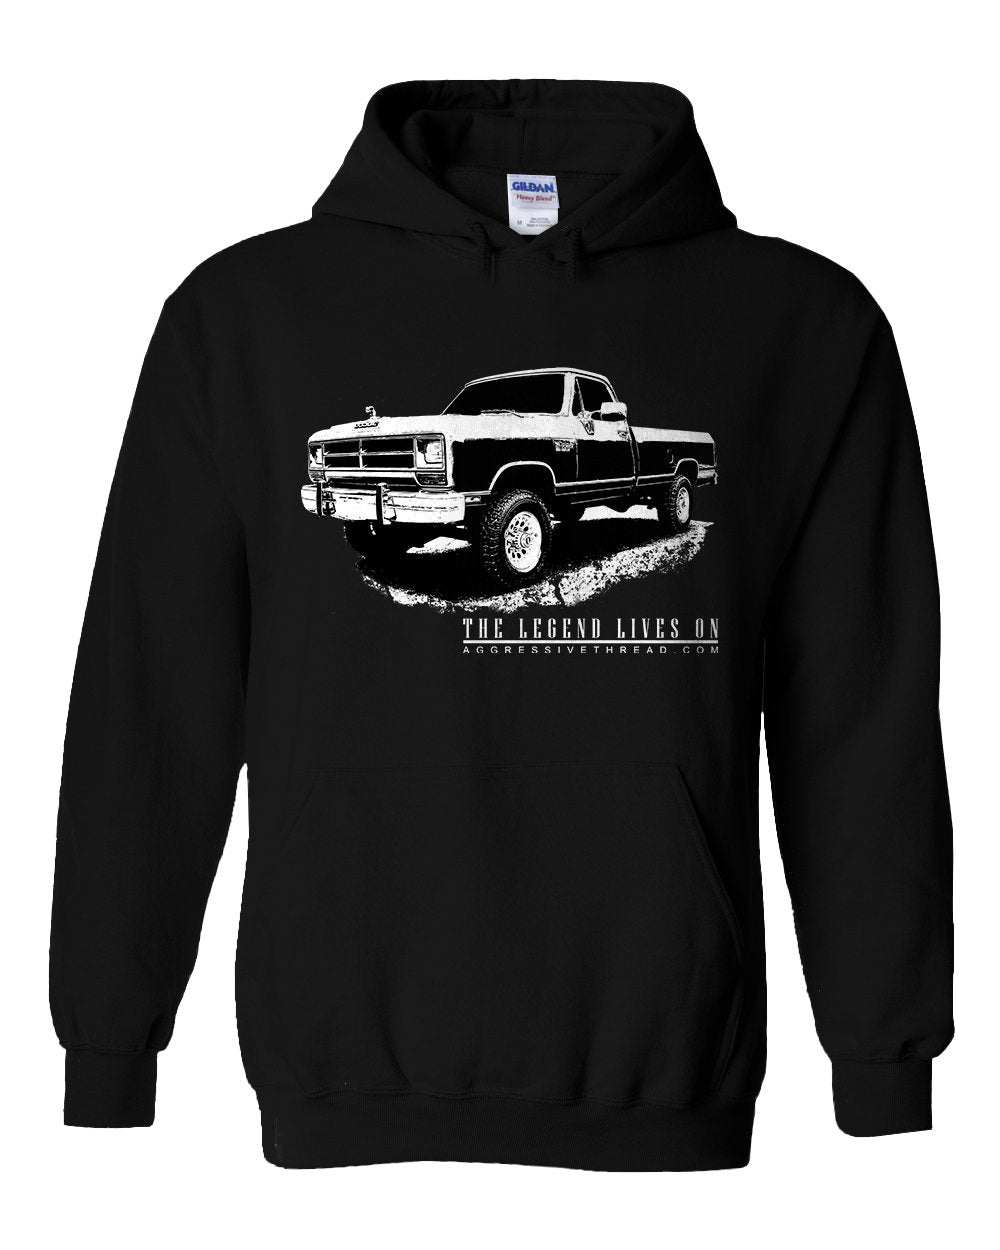 First Gen Dodge Ram Truck Hoodie Sweatshirt | Aggressive Thread Diesel Truck Apparel